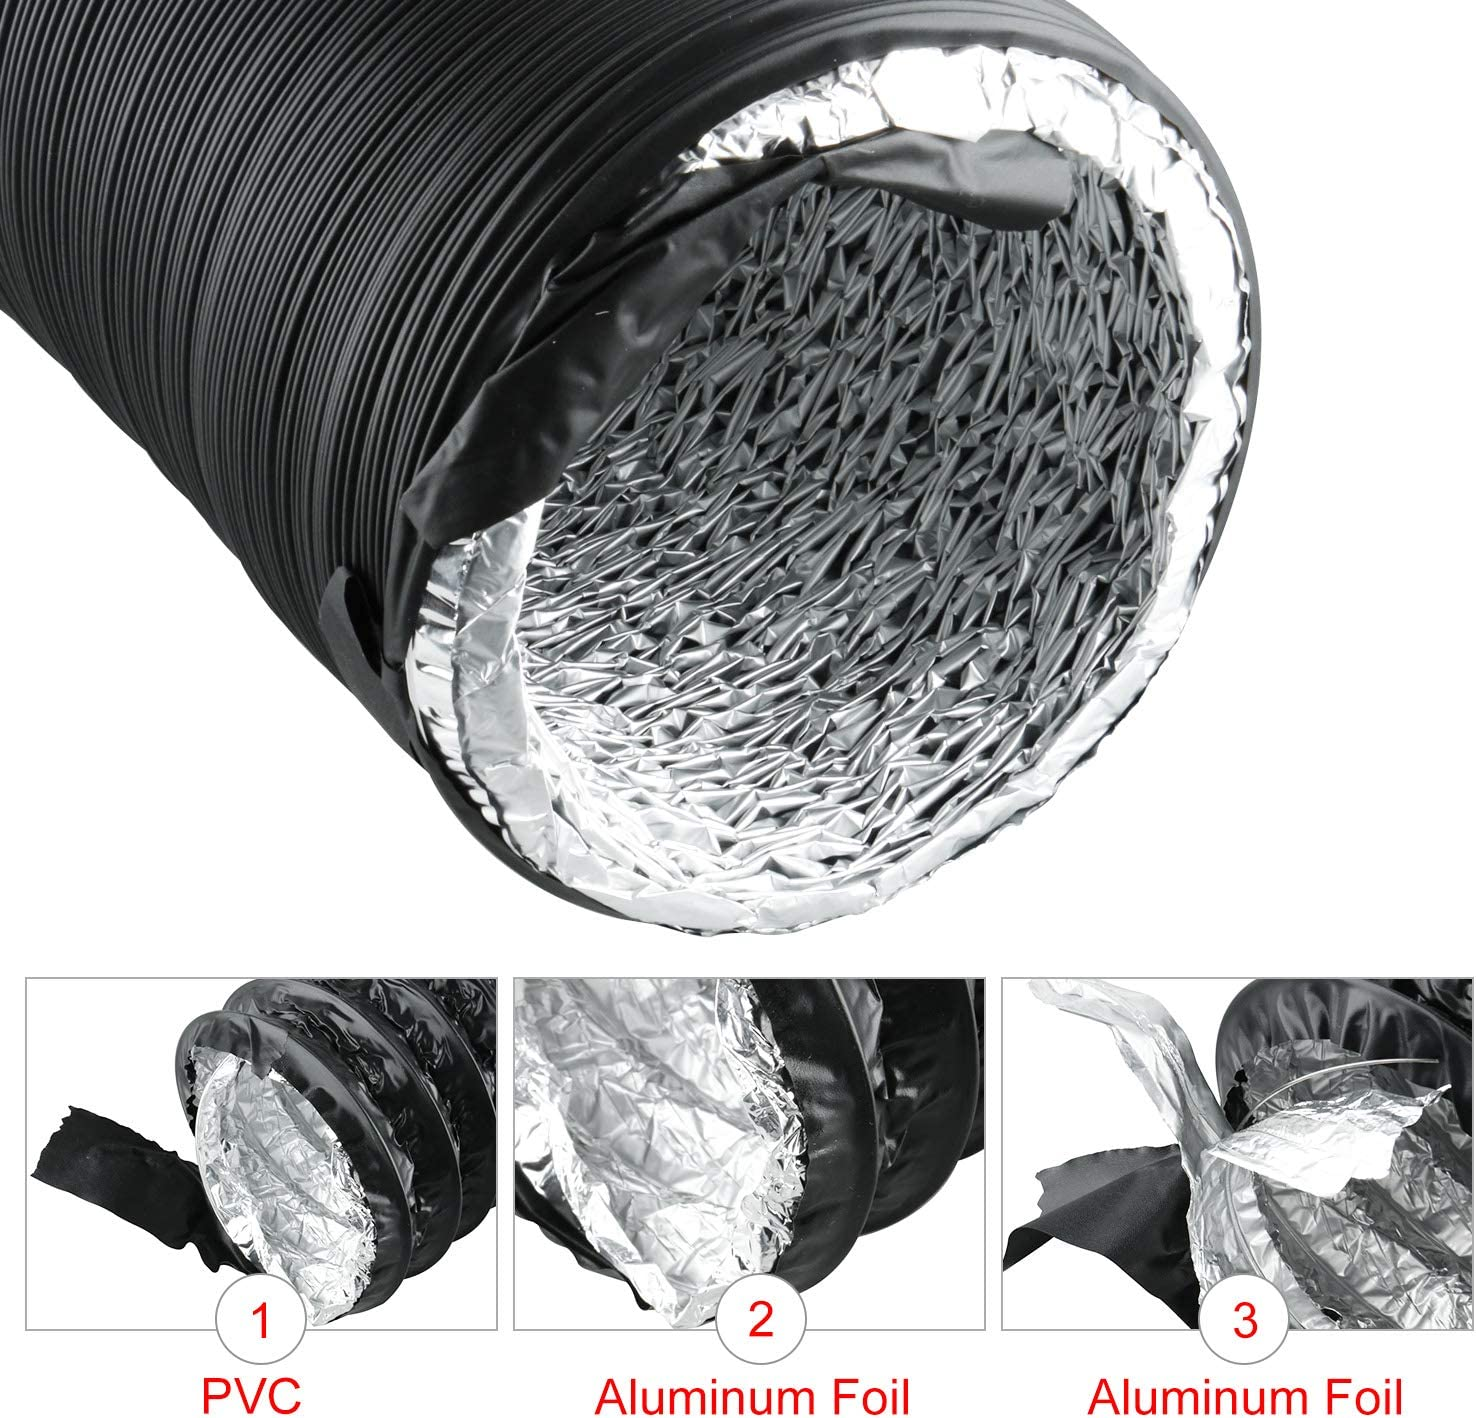 Black Flexible Ducting HVAC Ventilation Air Hose for Grow Tents 4 X 16 FT, Black Dryer Rooms,Kitchen Homend Air Duct